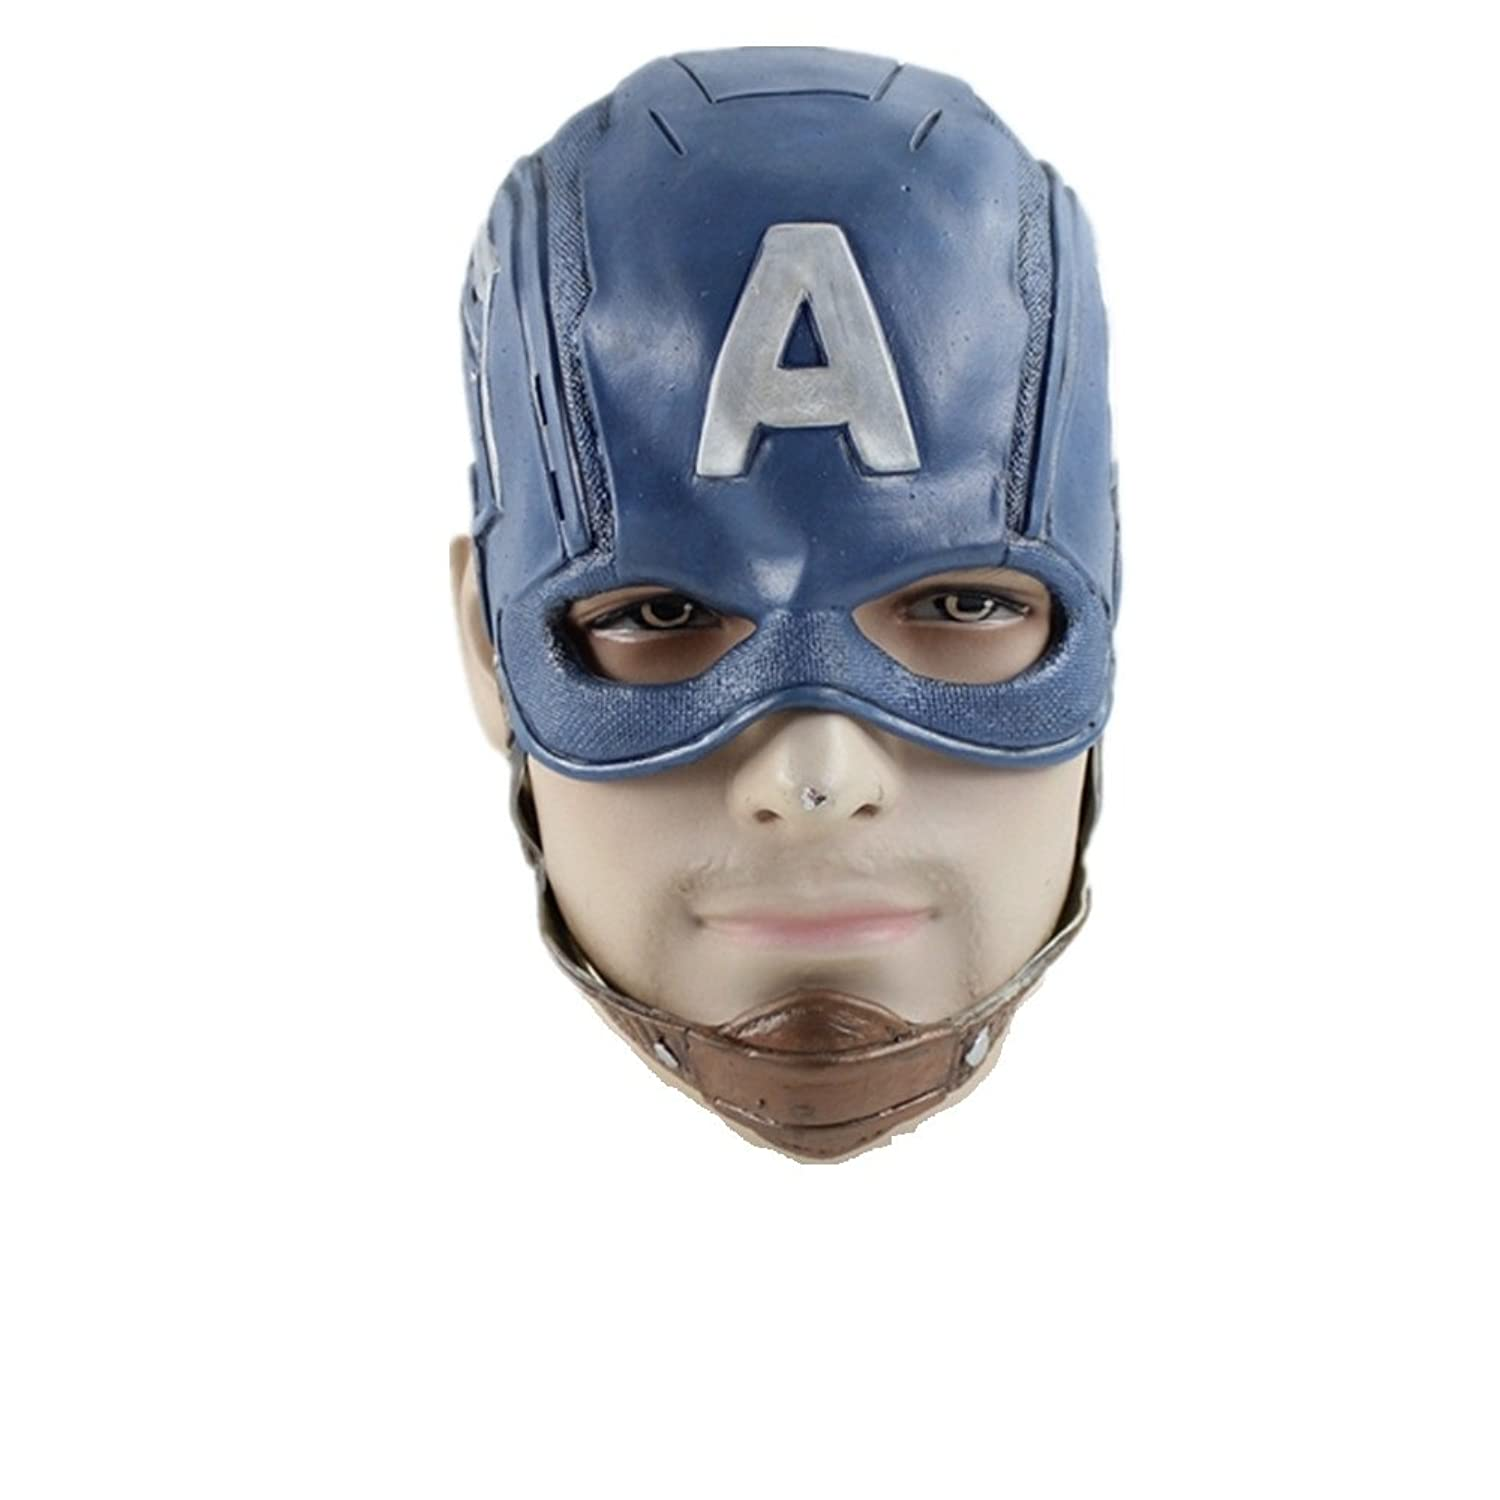 Captain America The Winter Soldier Cosplay Captain America Belt Strap Props Mask